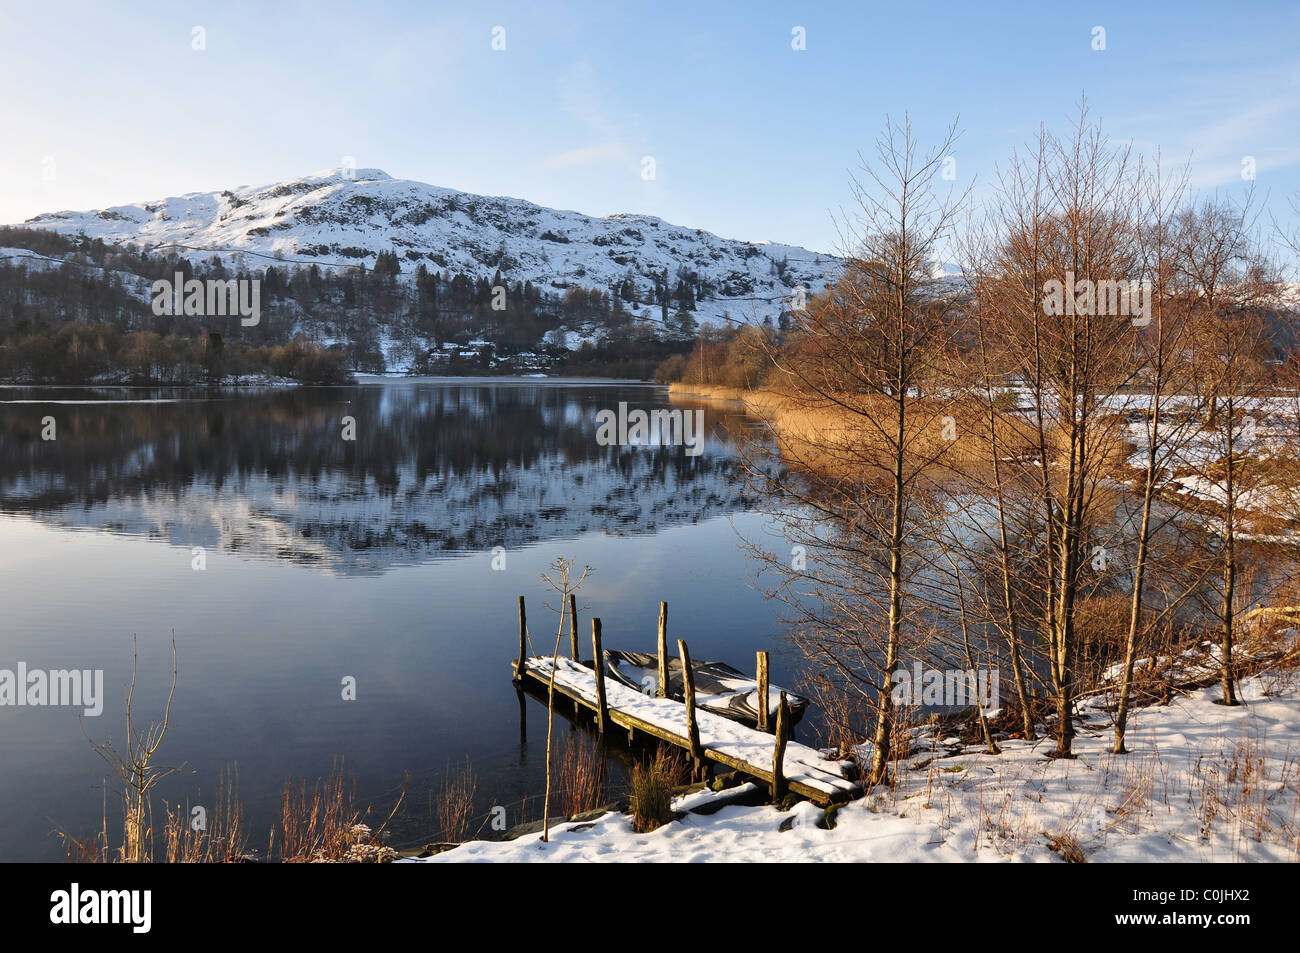 Looking to a snow clad Silver How Fell, over boat jetty, Grasmere Lake, Grasmere, Lake District, Cumbria - Stock Image